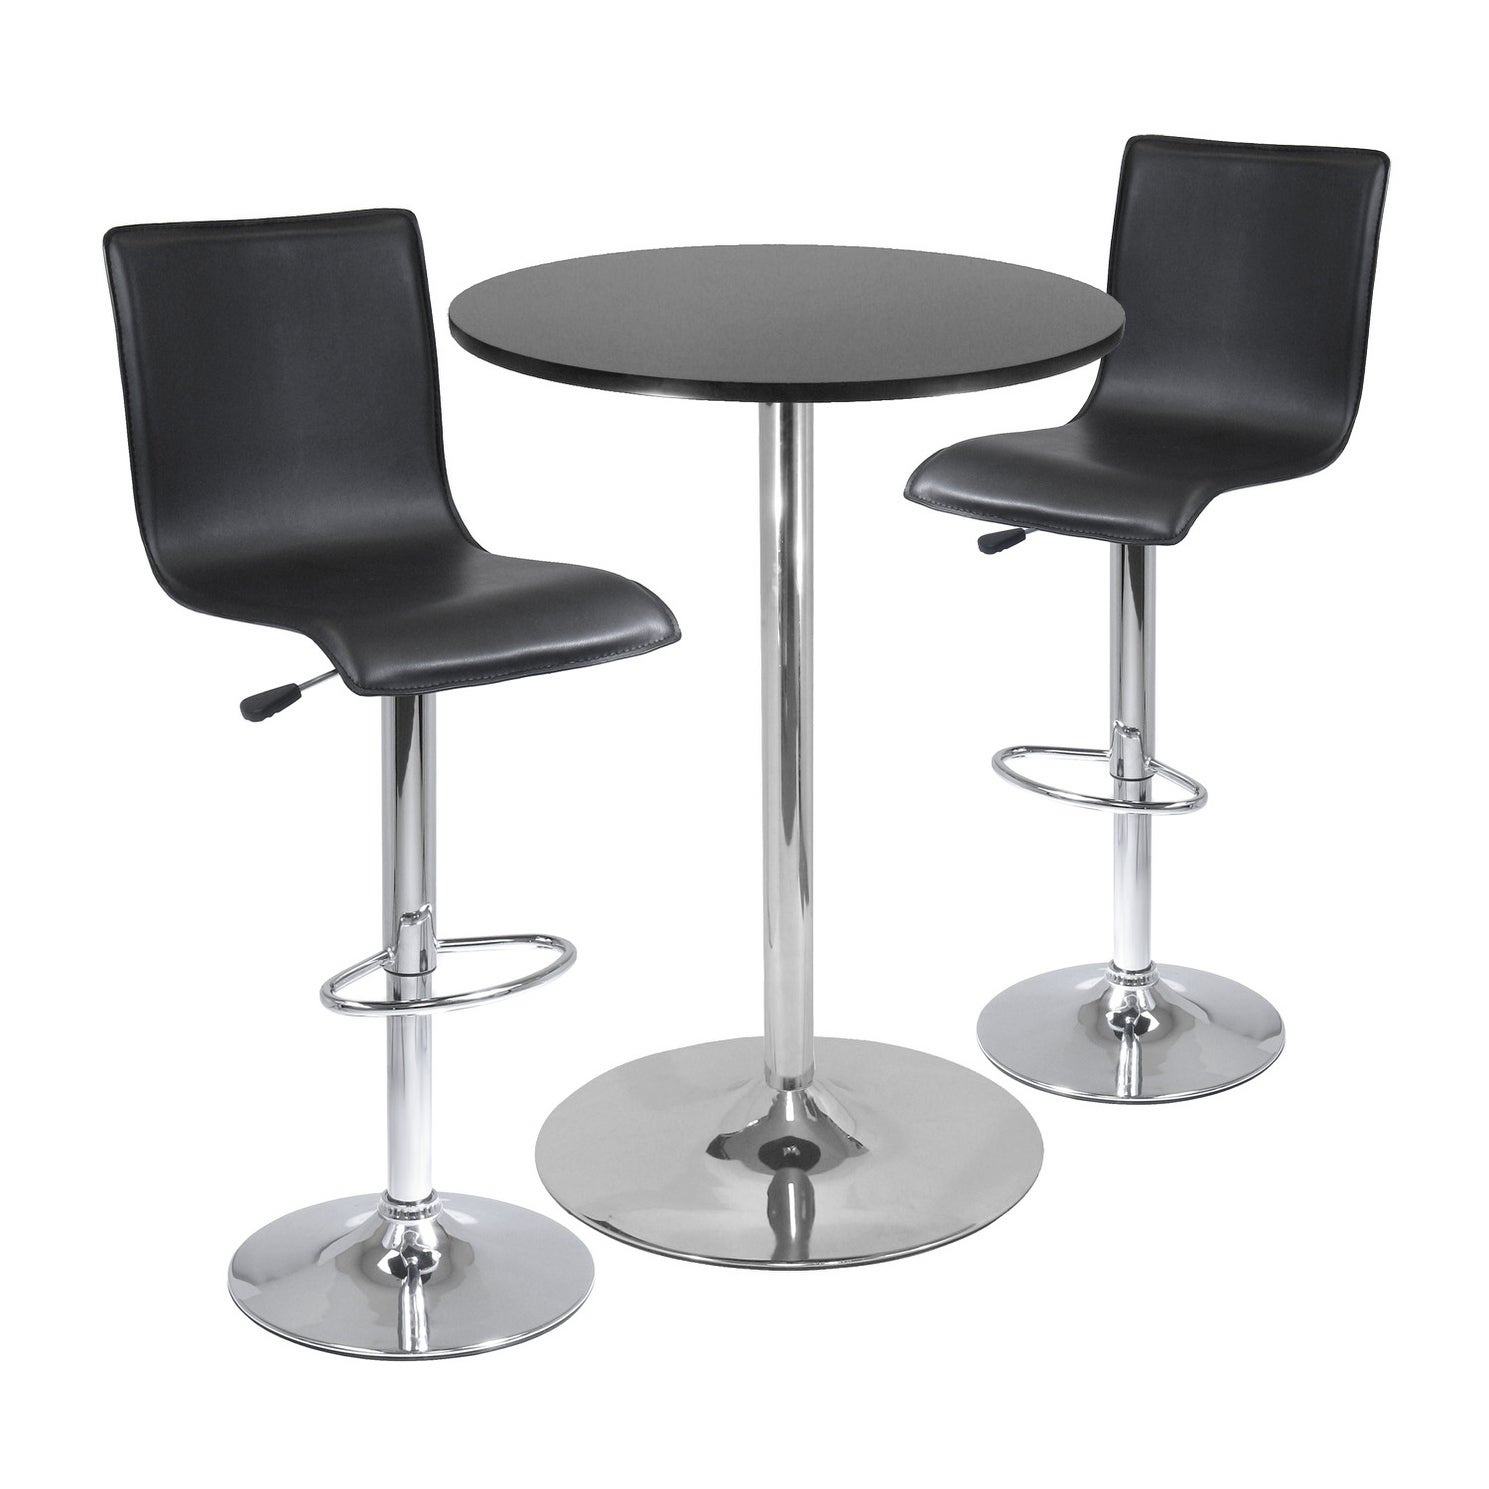 Shop Spectrum 3pc Pub Table Set 28 Round Table With 2 L Shape Airlift Stools Overstock 20735464